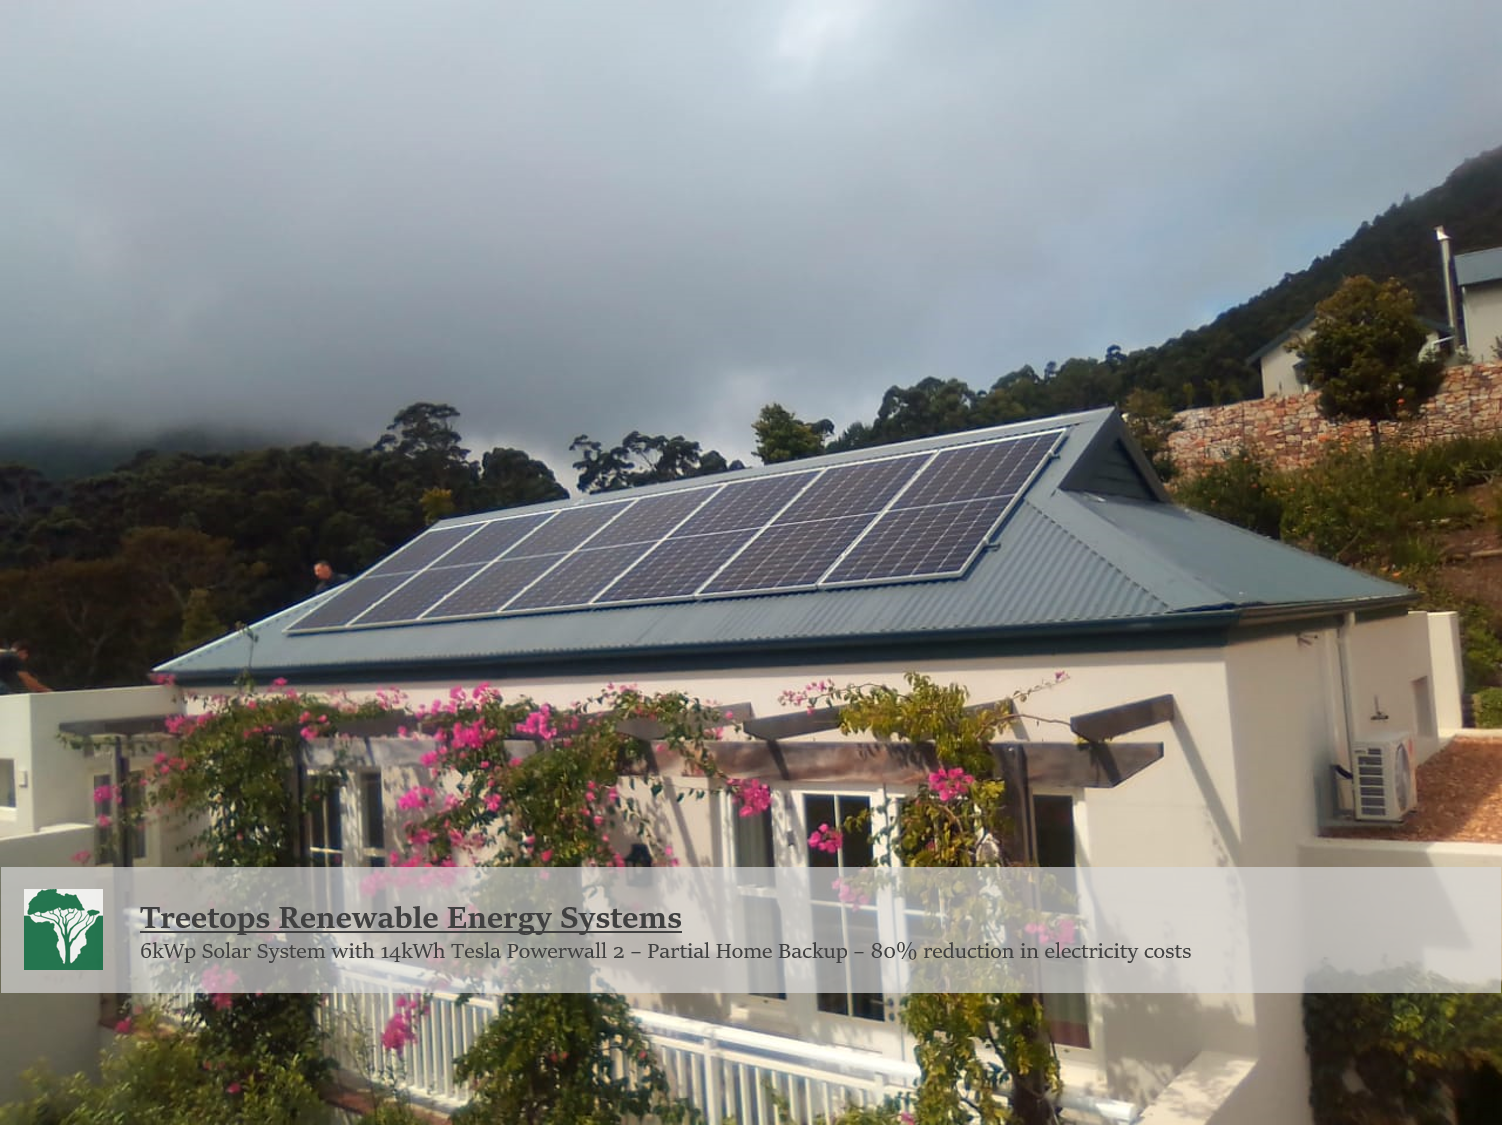 Solar Power System with Tesla Powerwall 2 in Hout Bay, Cape Town